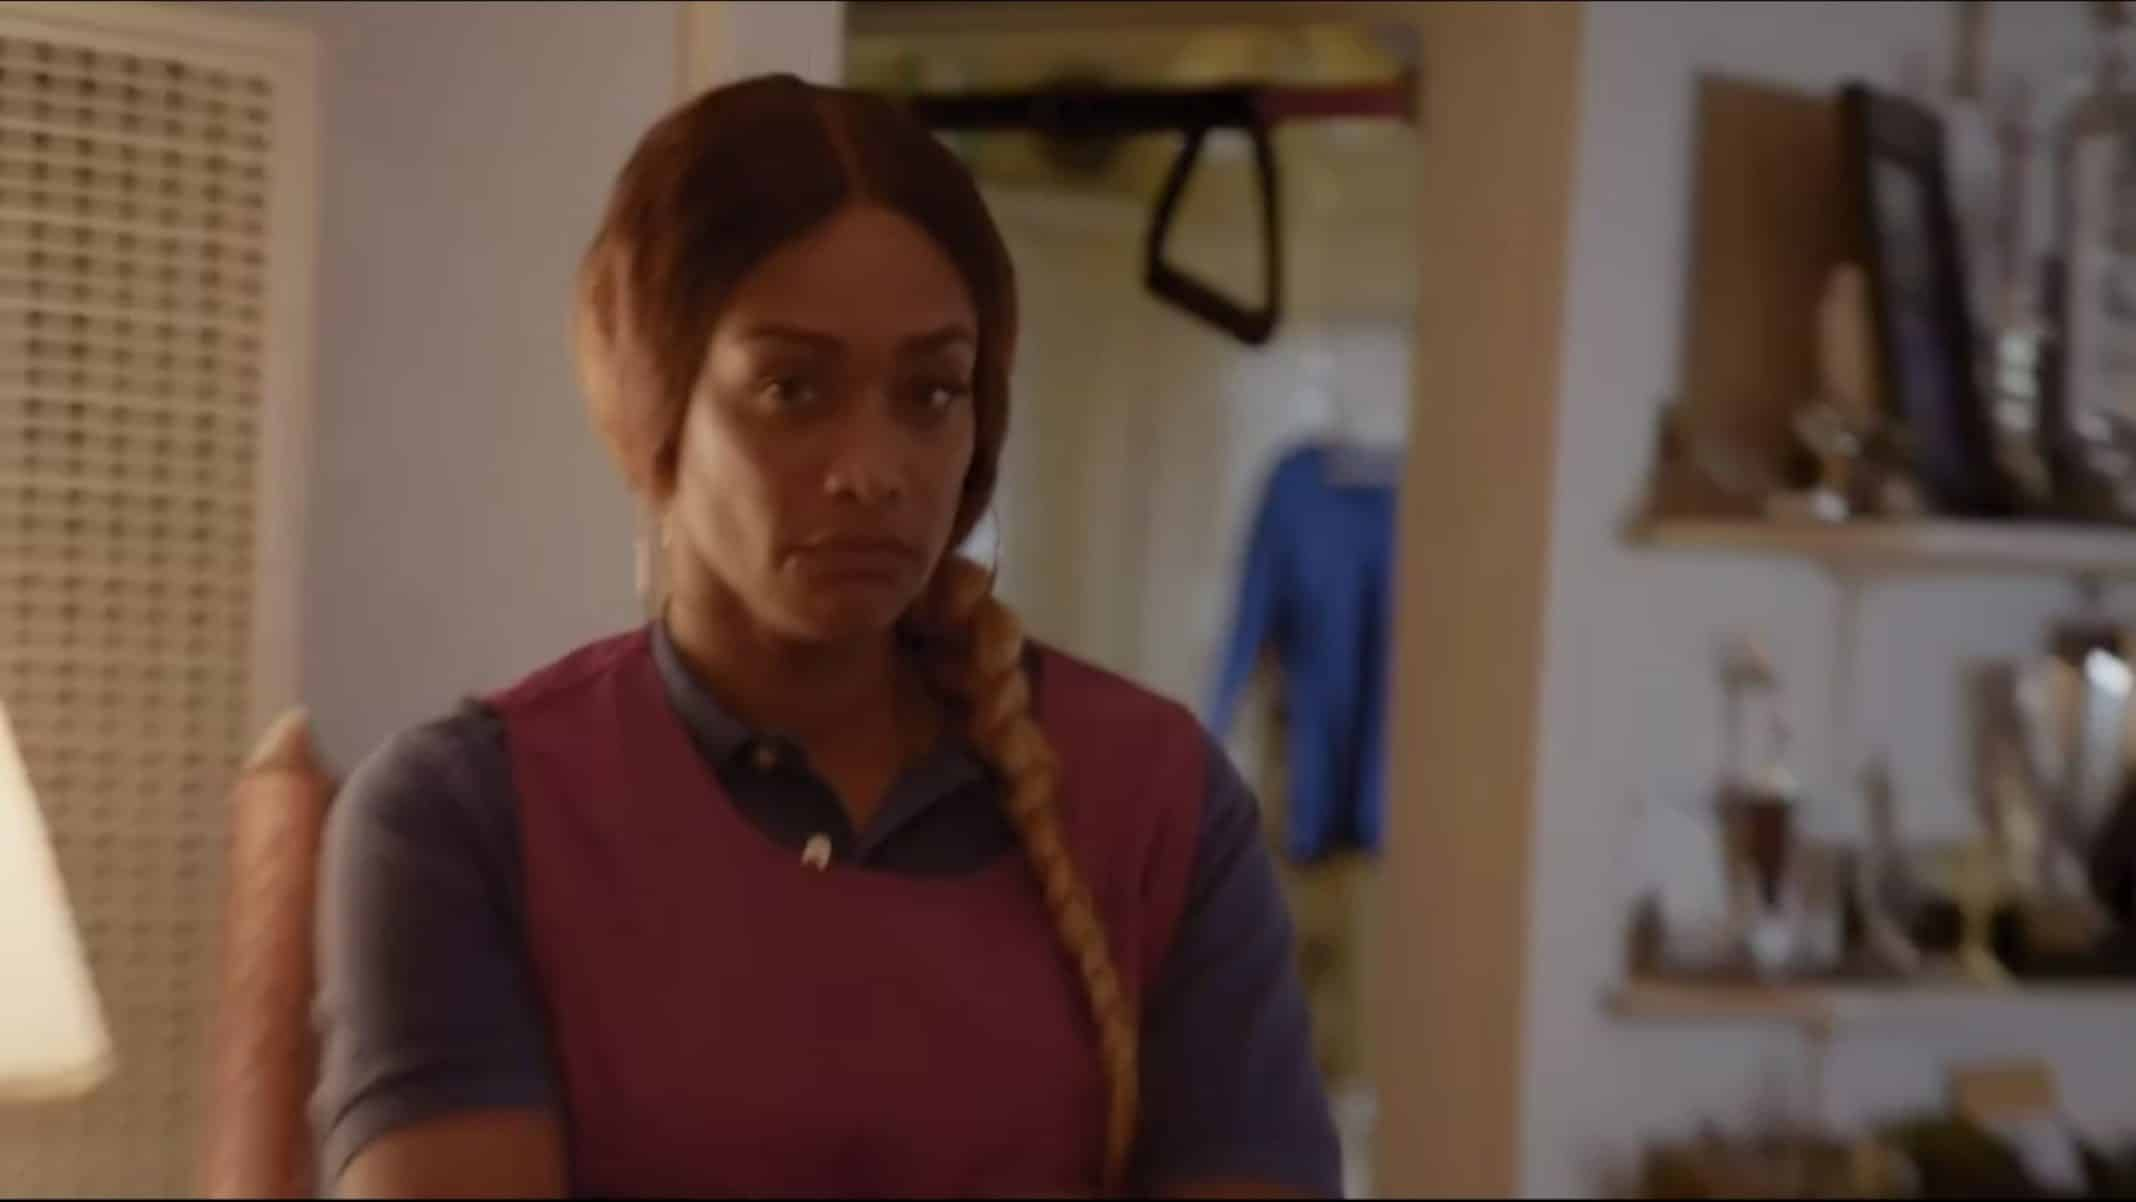 Sharea (Tami Roman) making it clear she don't like the camera focusing on her.